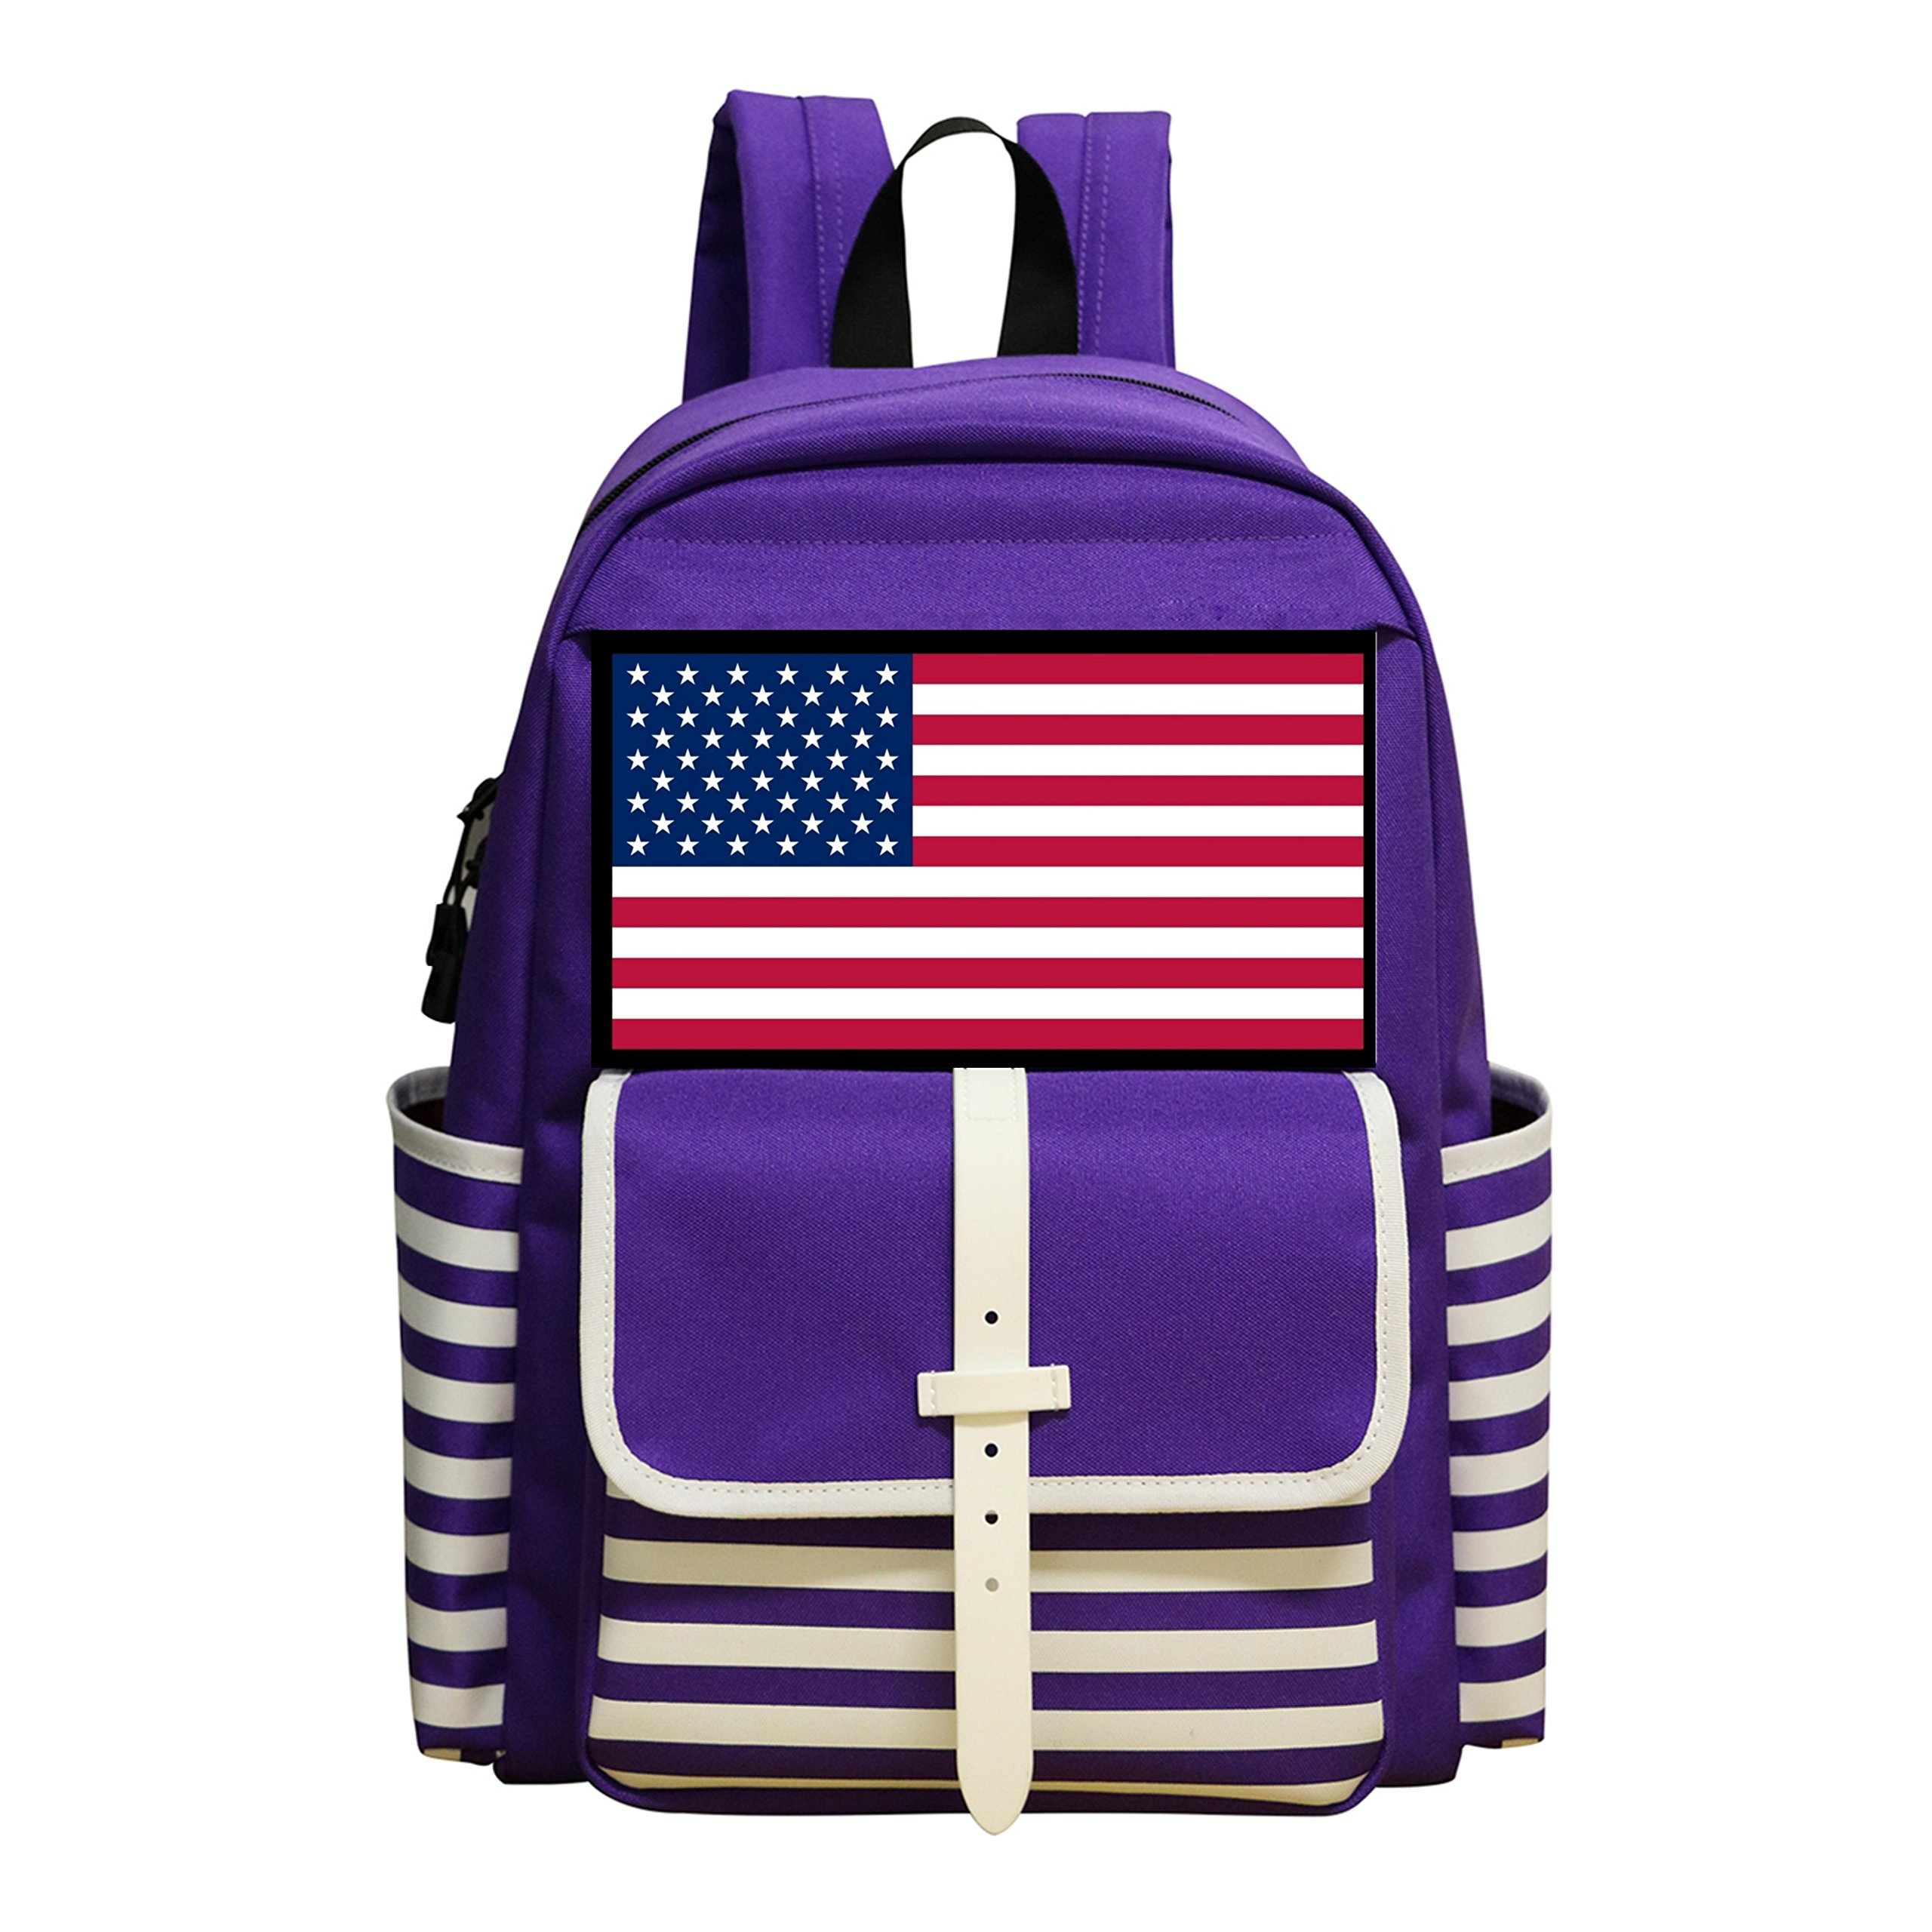 Fashion Student Backpack USA Wrestling Boys&Girls School Bag by BGE4 FDSAGRGT